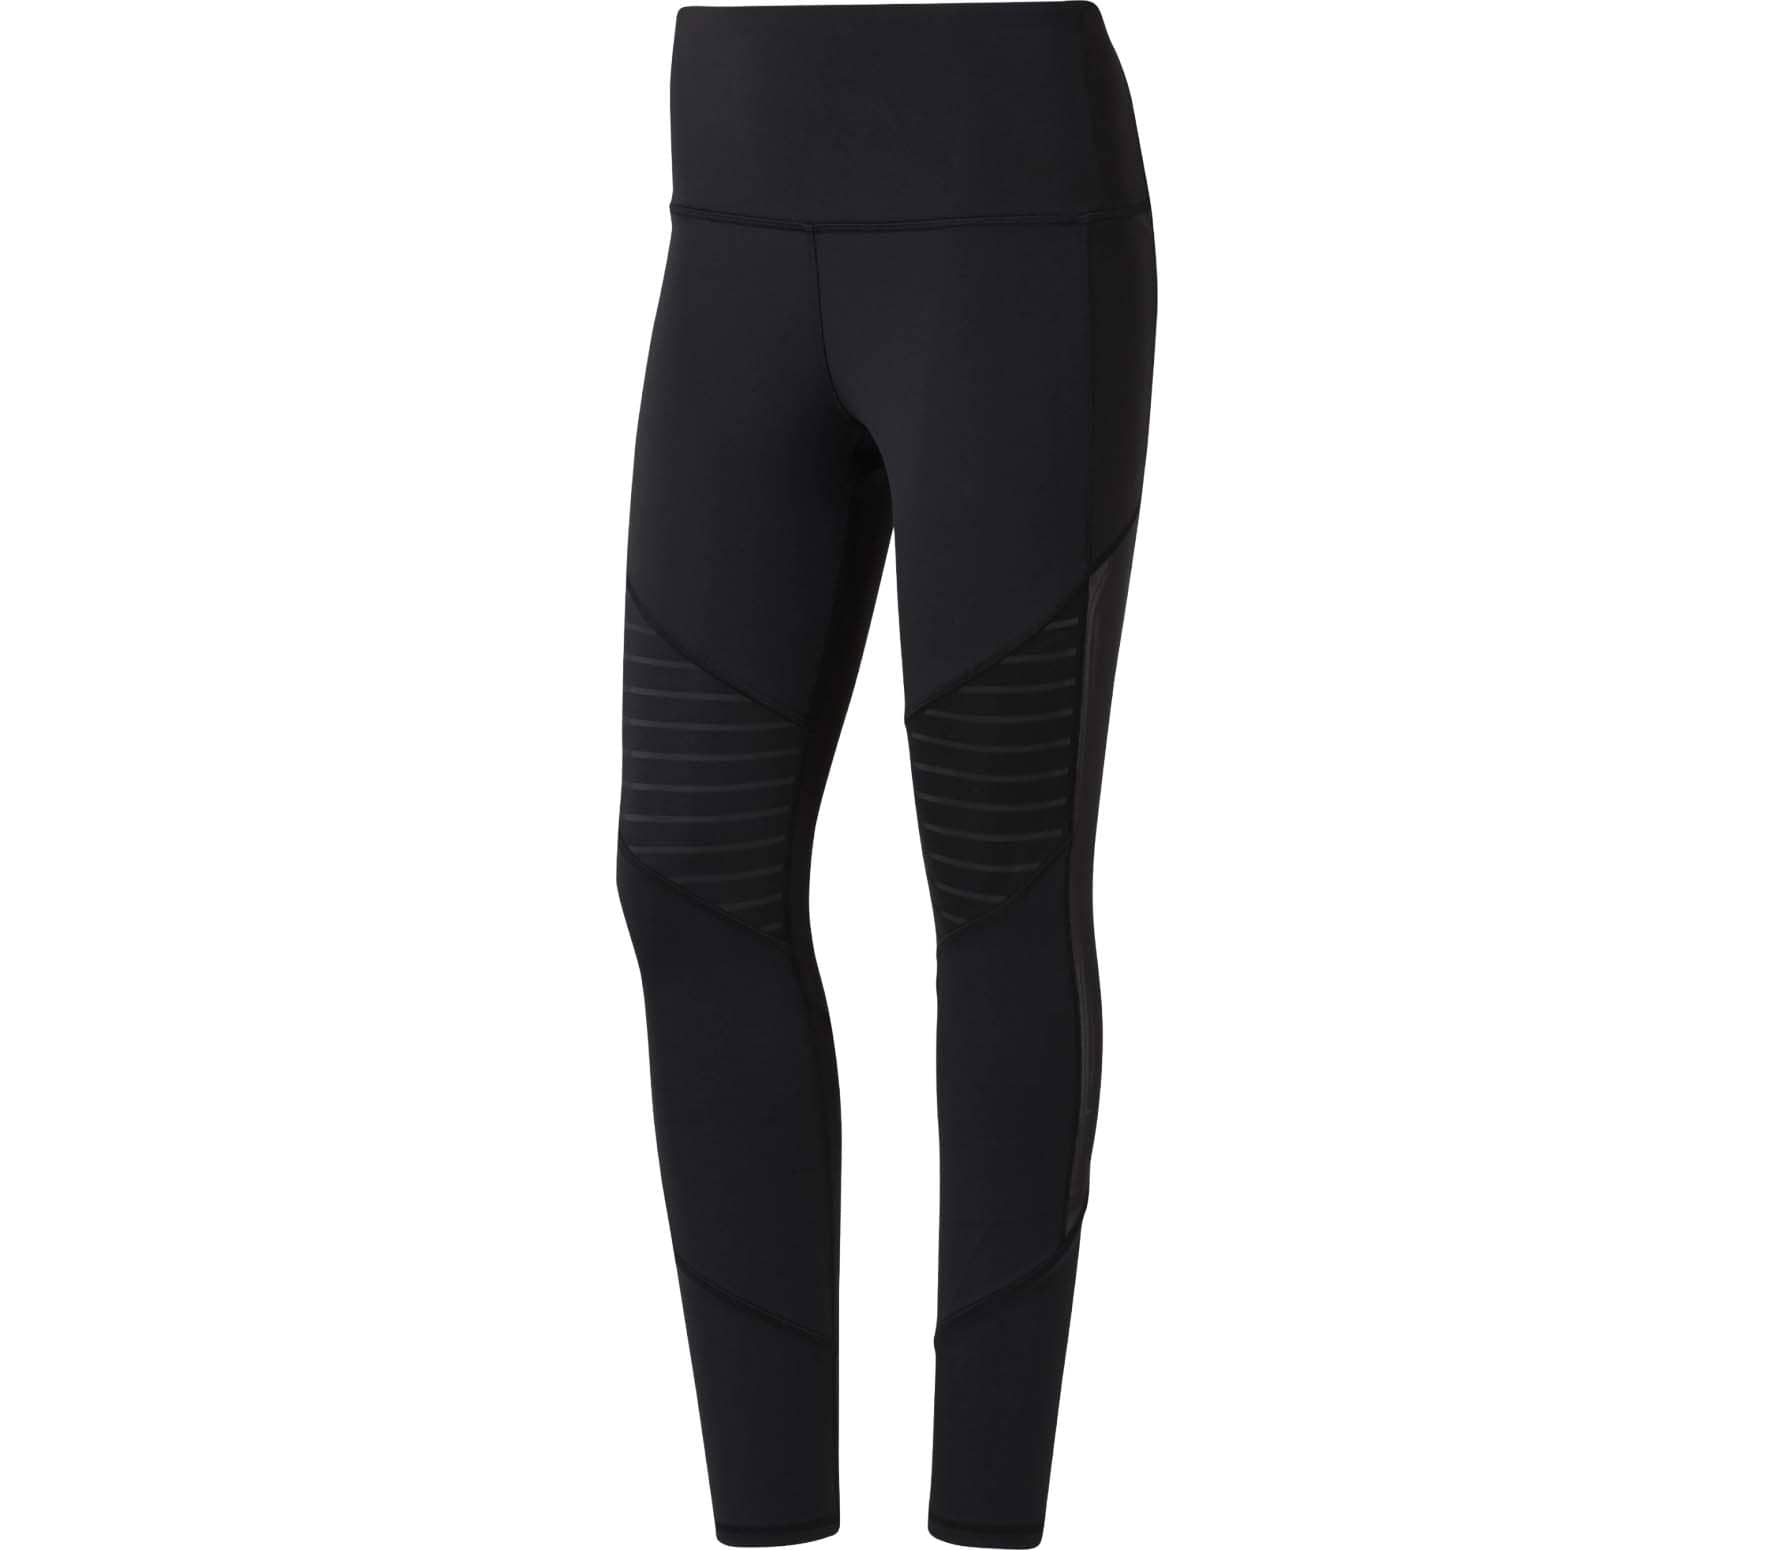 9801fcaef83306 Reebok Mesh Women Training Tights black - buy it at the Keller ...